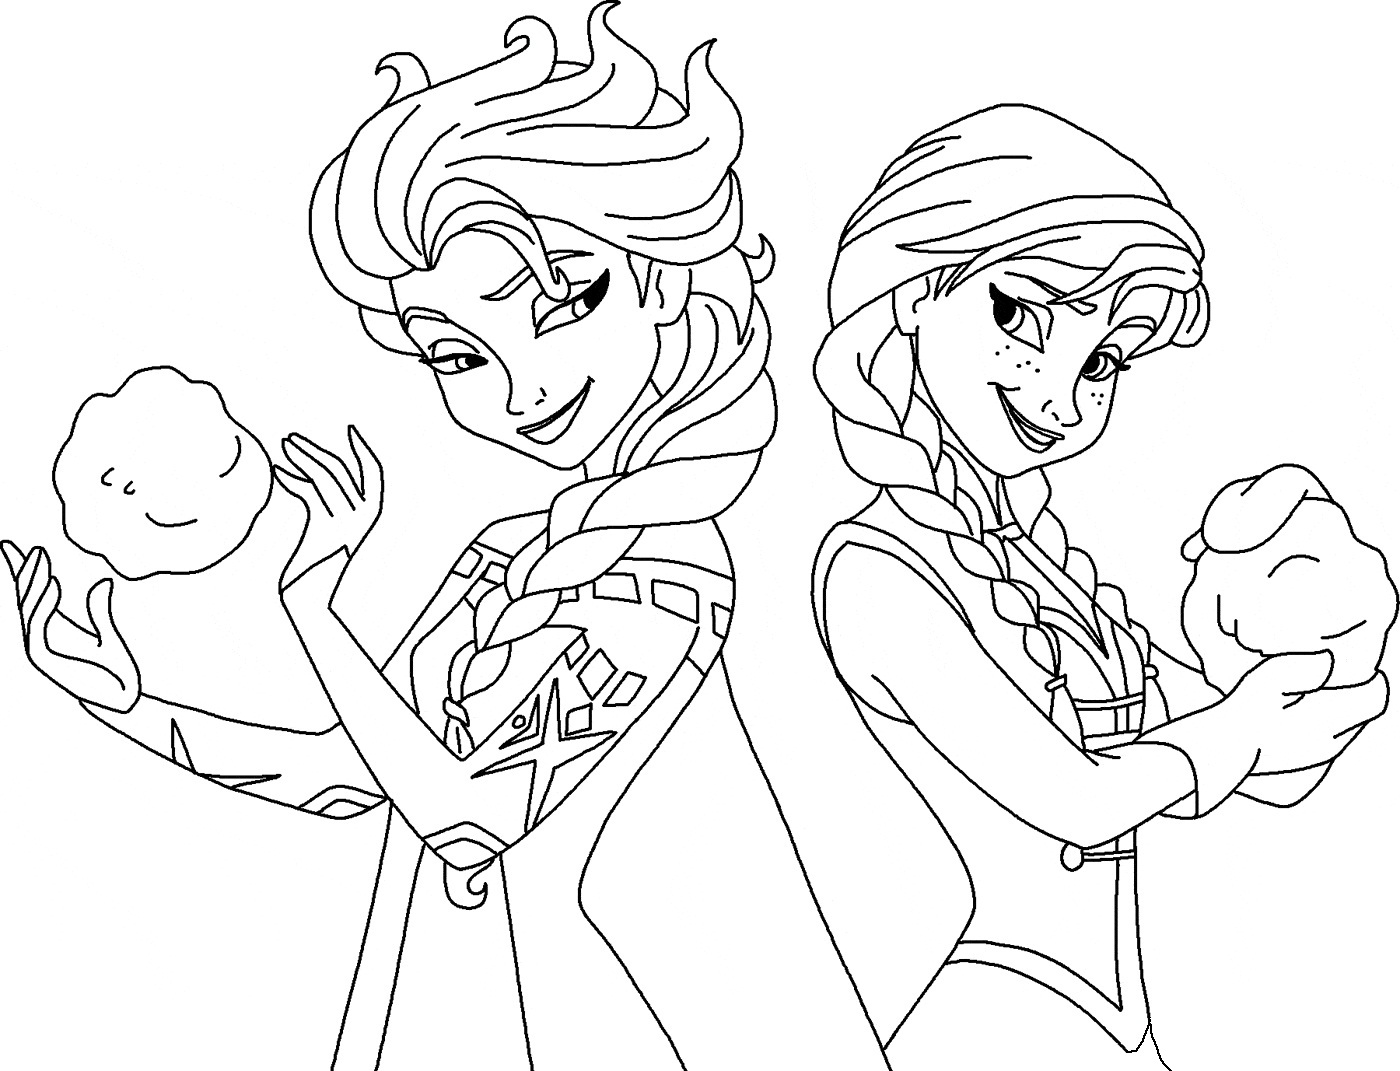 free coloring pages elsa and anna coloring pages elsa and anna frozen print a4 size for free anna coloring pages free and elsa